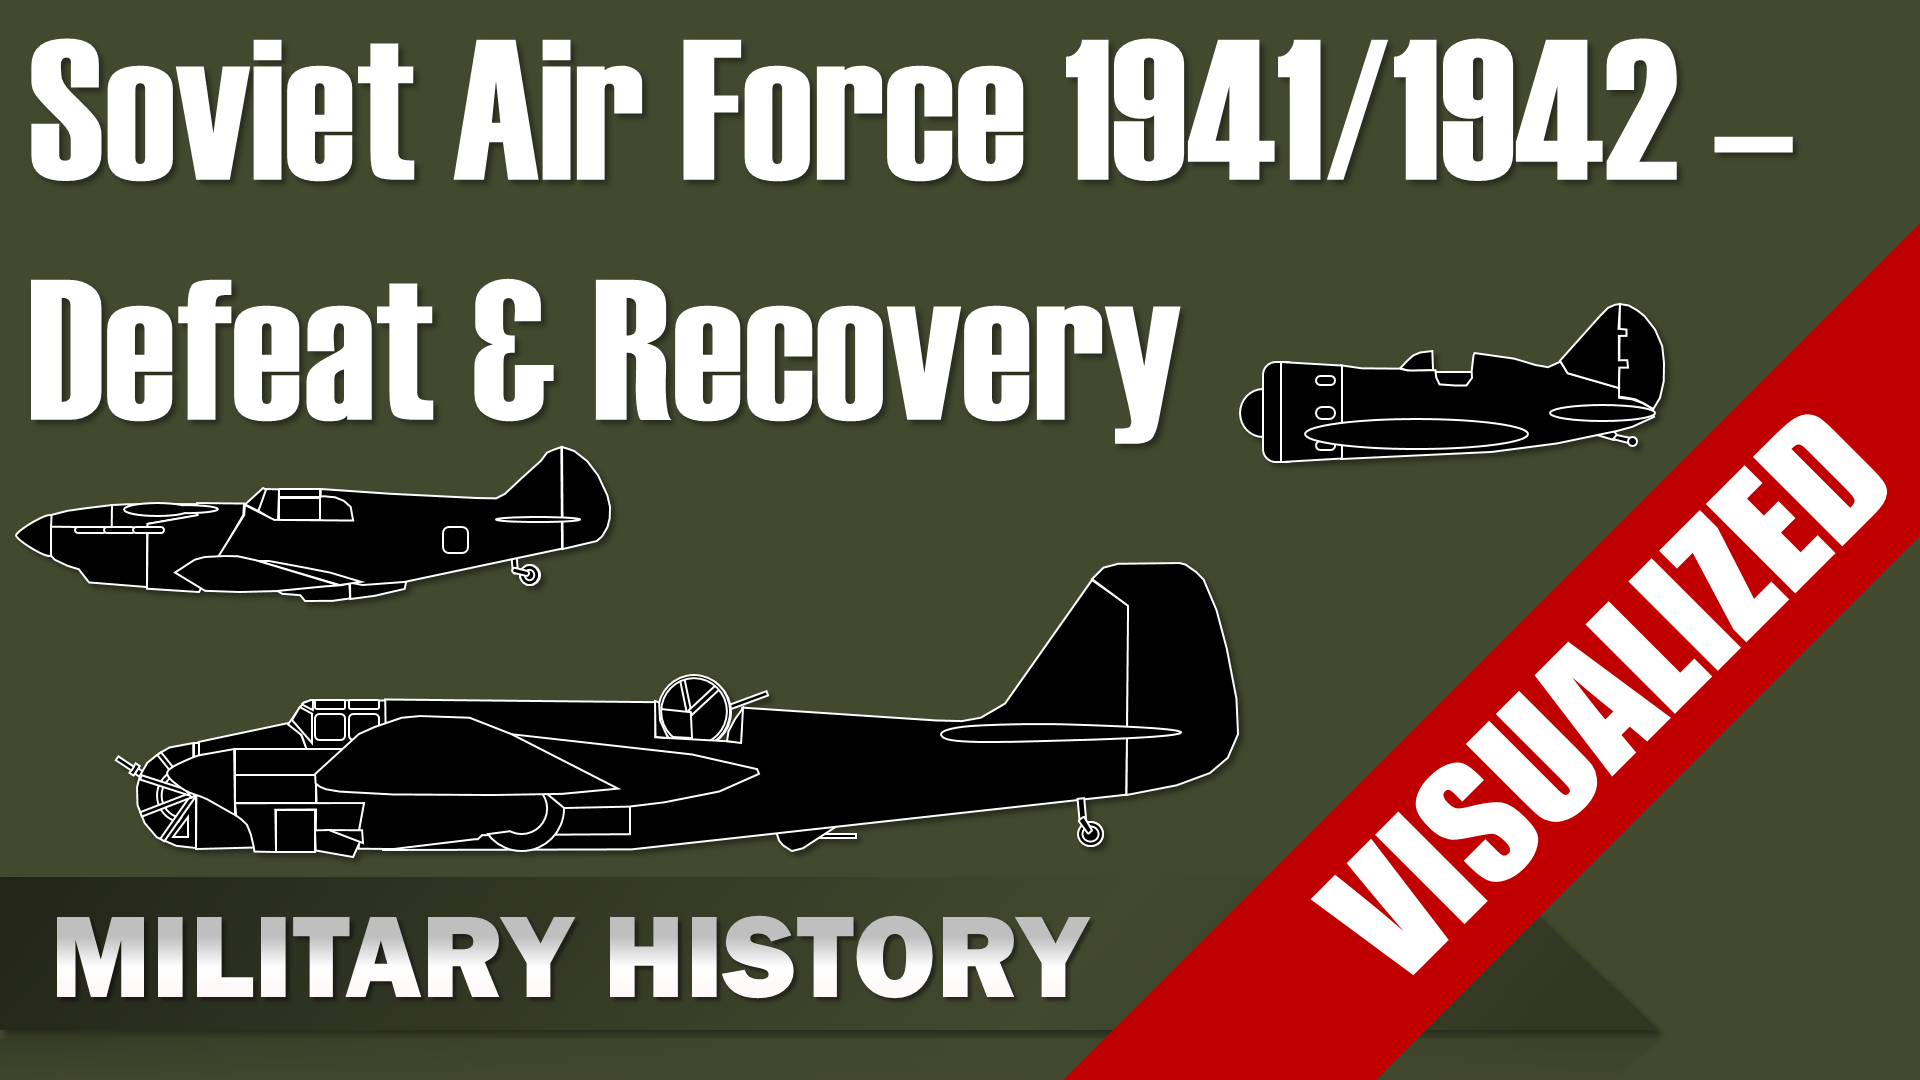 Soviet Air Force Vvs 1941 1942 Defeat And Recovery